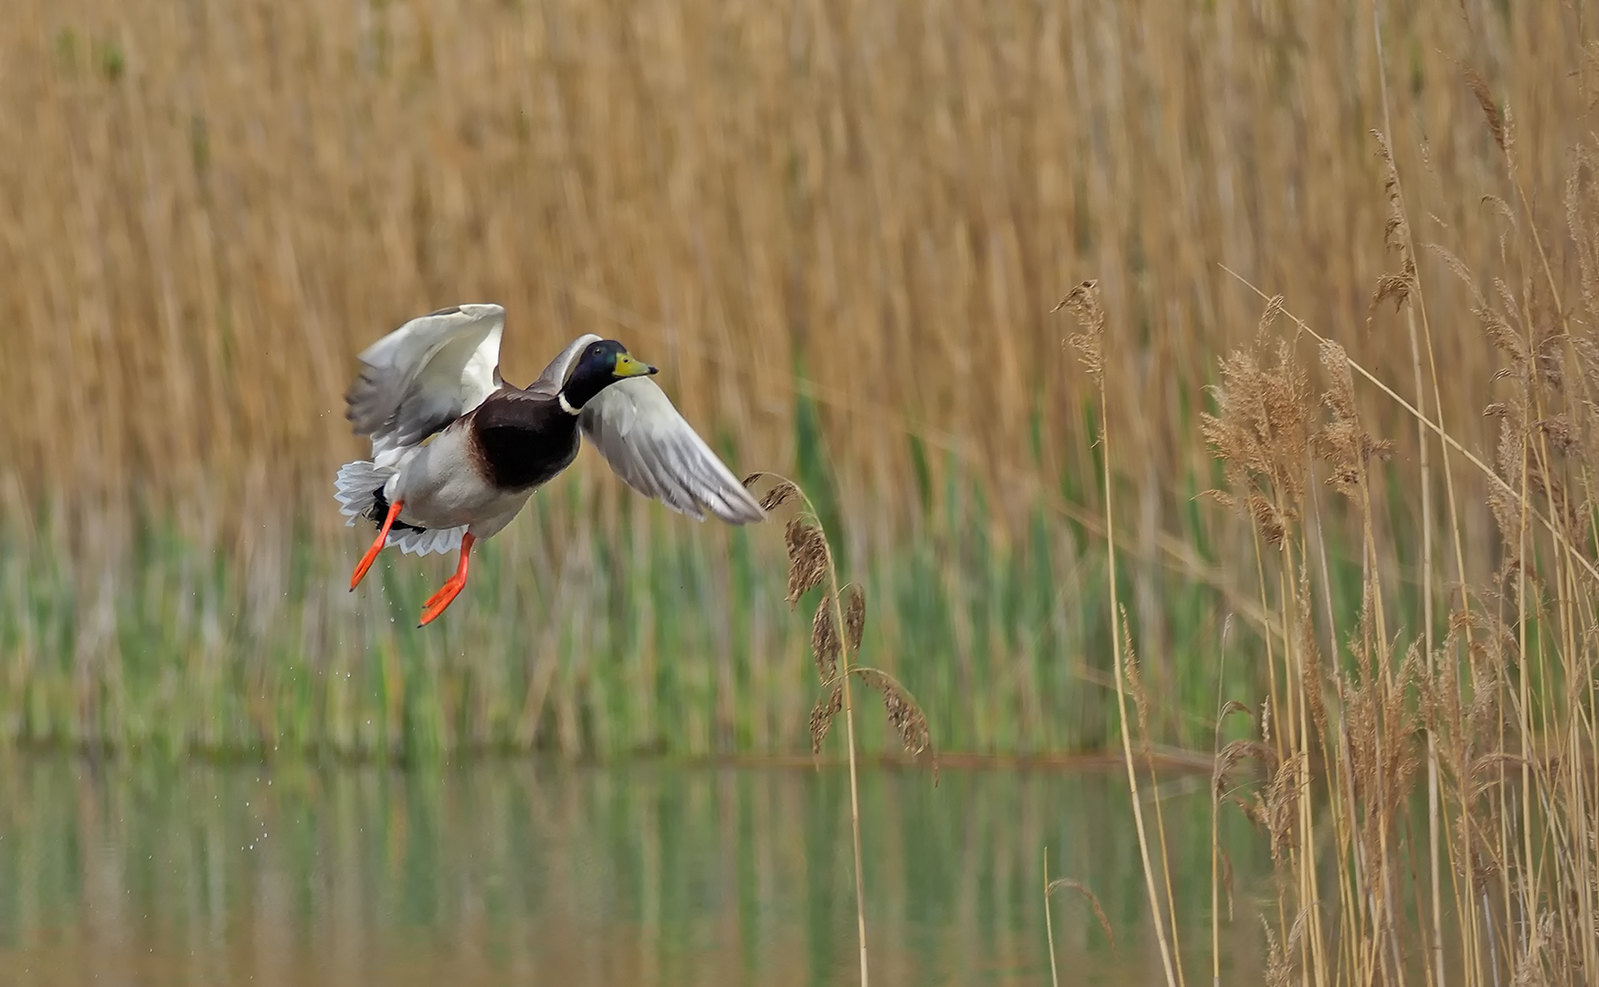 Mallard takes flight from reedbed